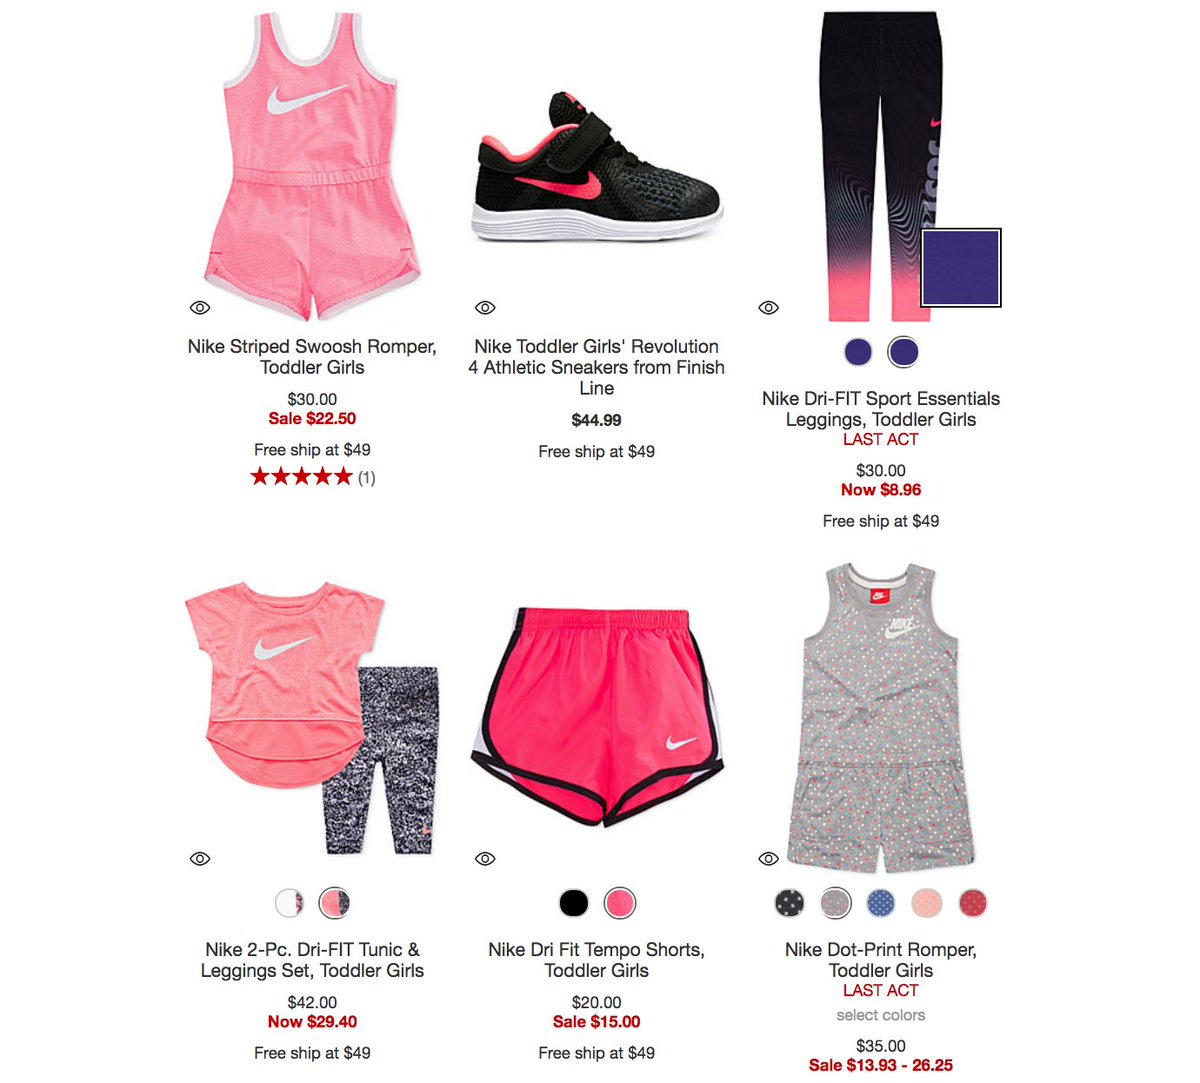 4f2d79abdc ... kids from their parents, do you worry that @Macys also carries the line  of a prominent member of the Trump administration? Is there a brand risk in  the ...